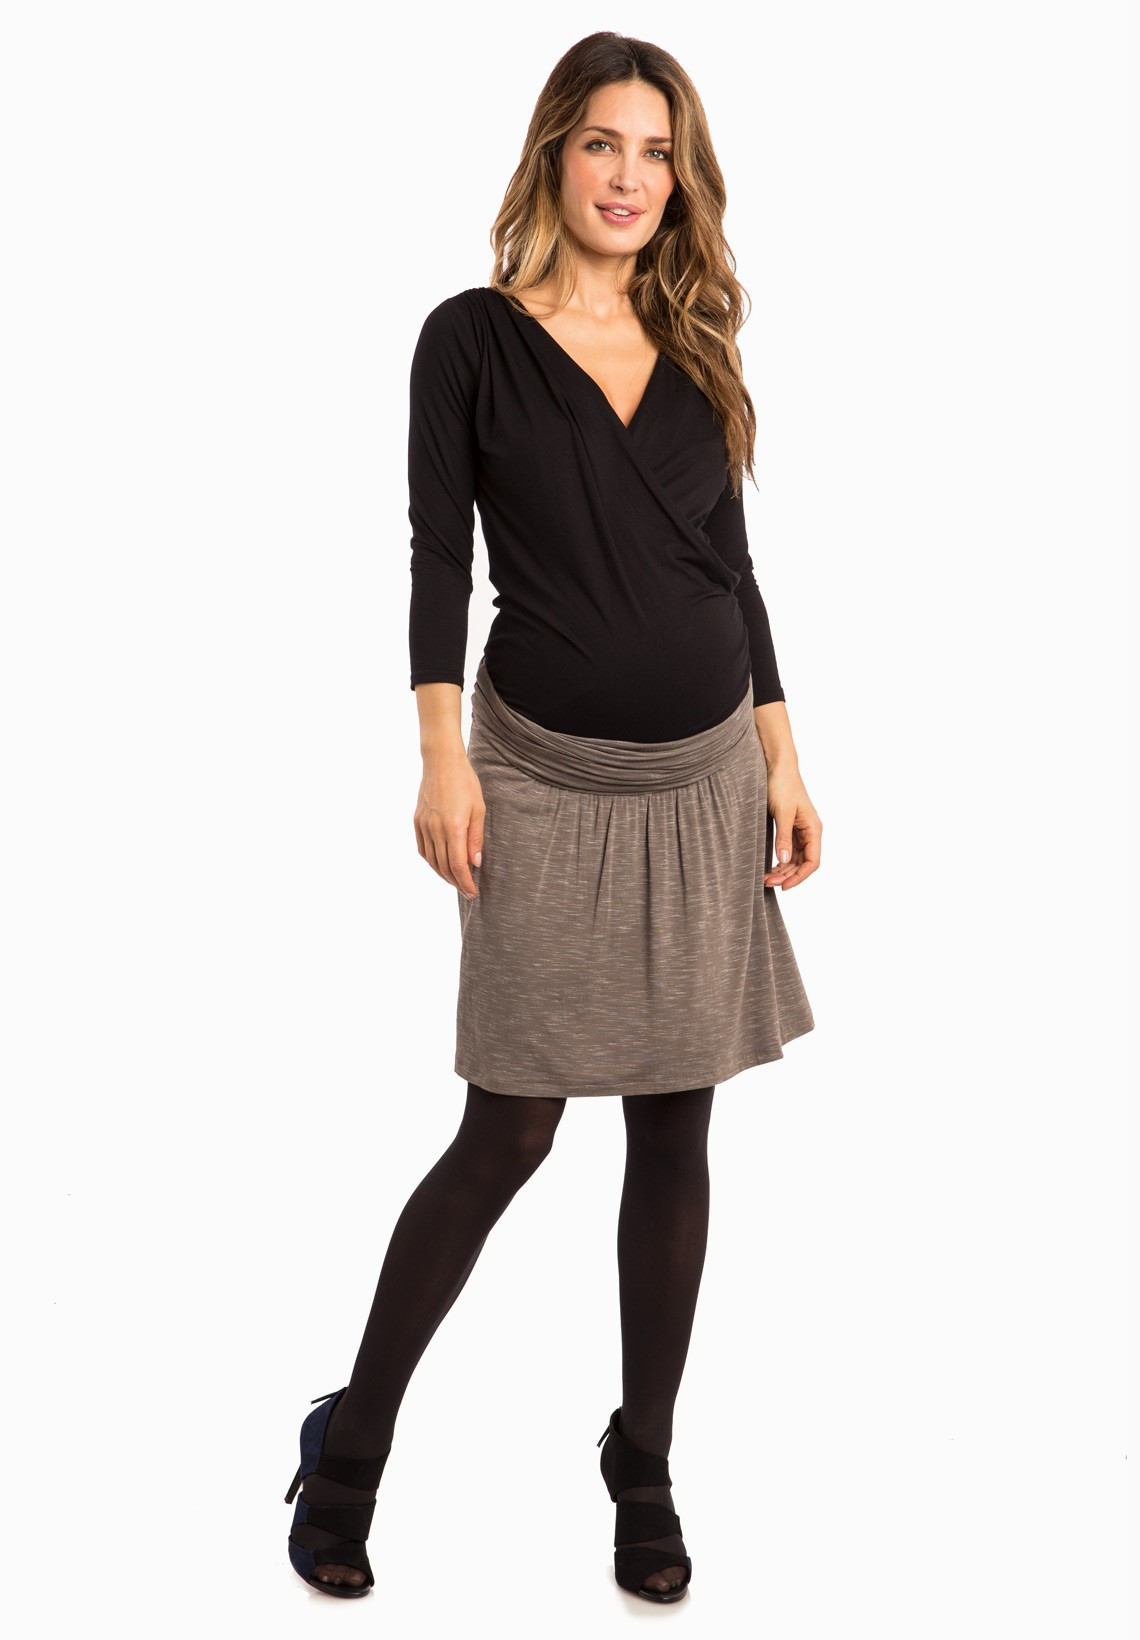 Shop our selection of maternity skirts at Motherhood Maternity! We carry short, knee length, and long maternity skirts. Motherhood Maternity.